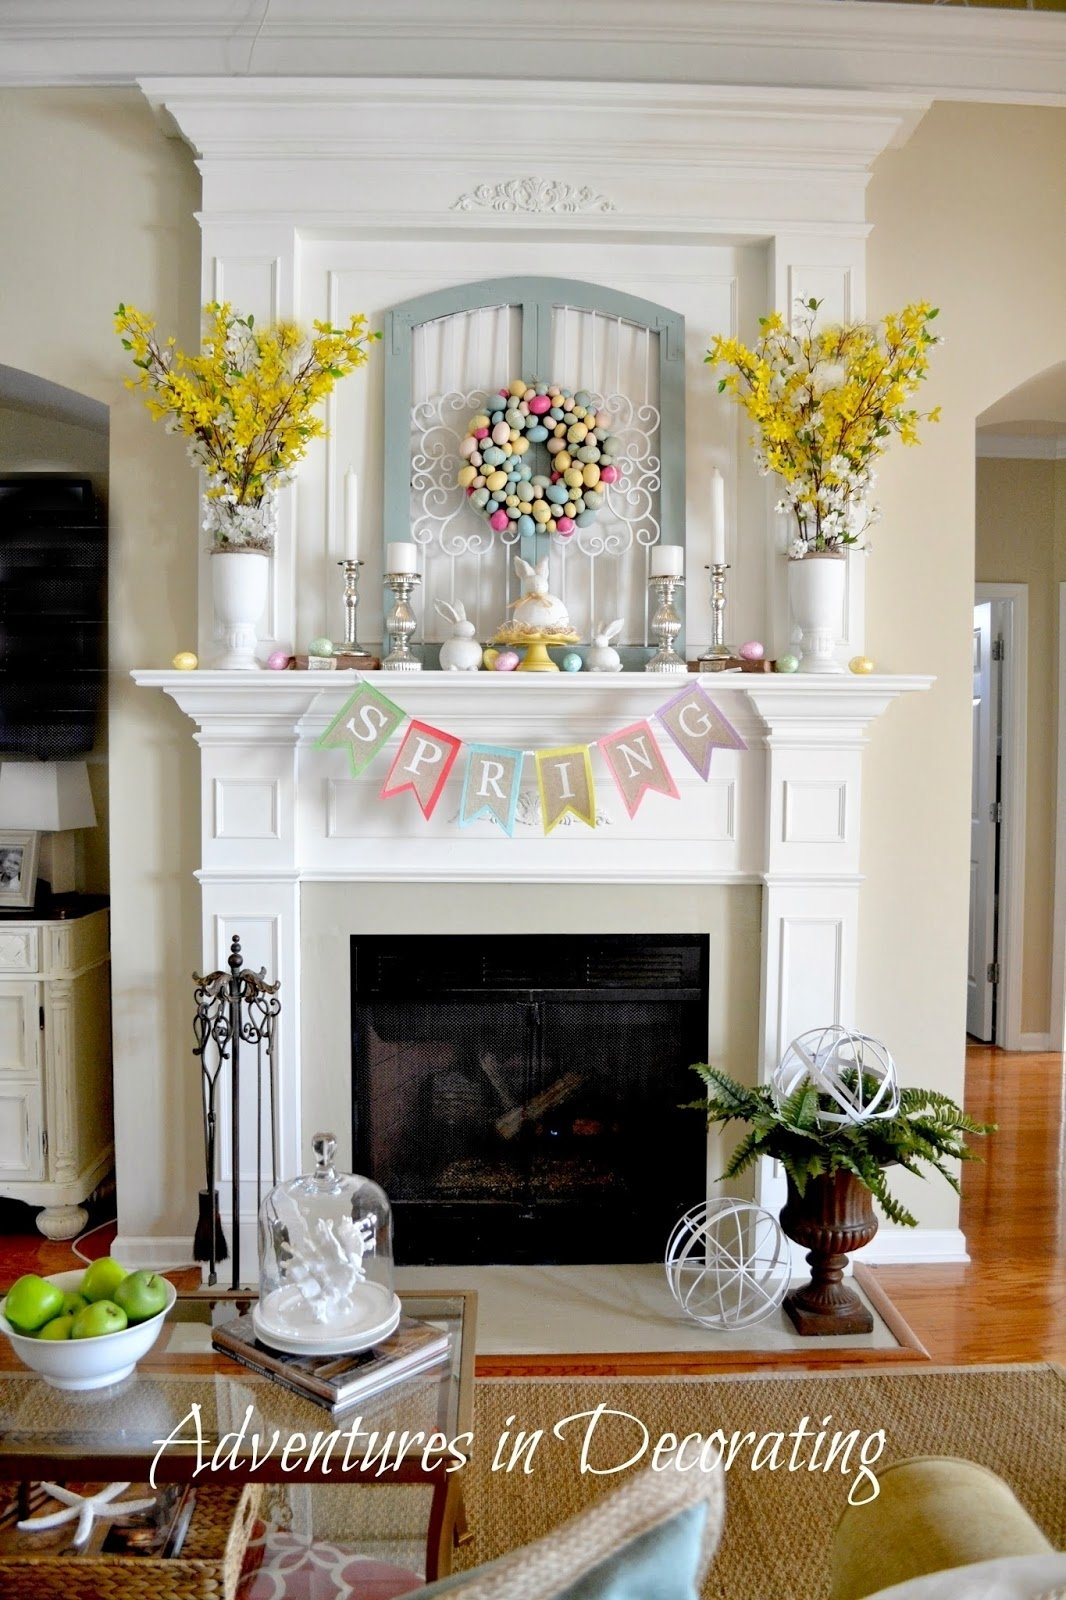 10 Spectacular Decorating Ideas For Fireplace Mantel adventures in decorating styling our spring mantel mantels for 2020